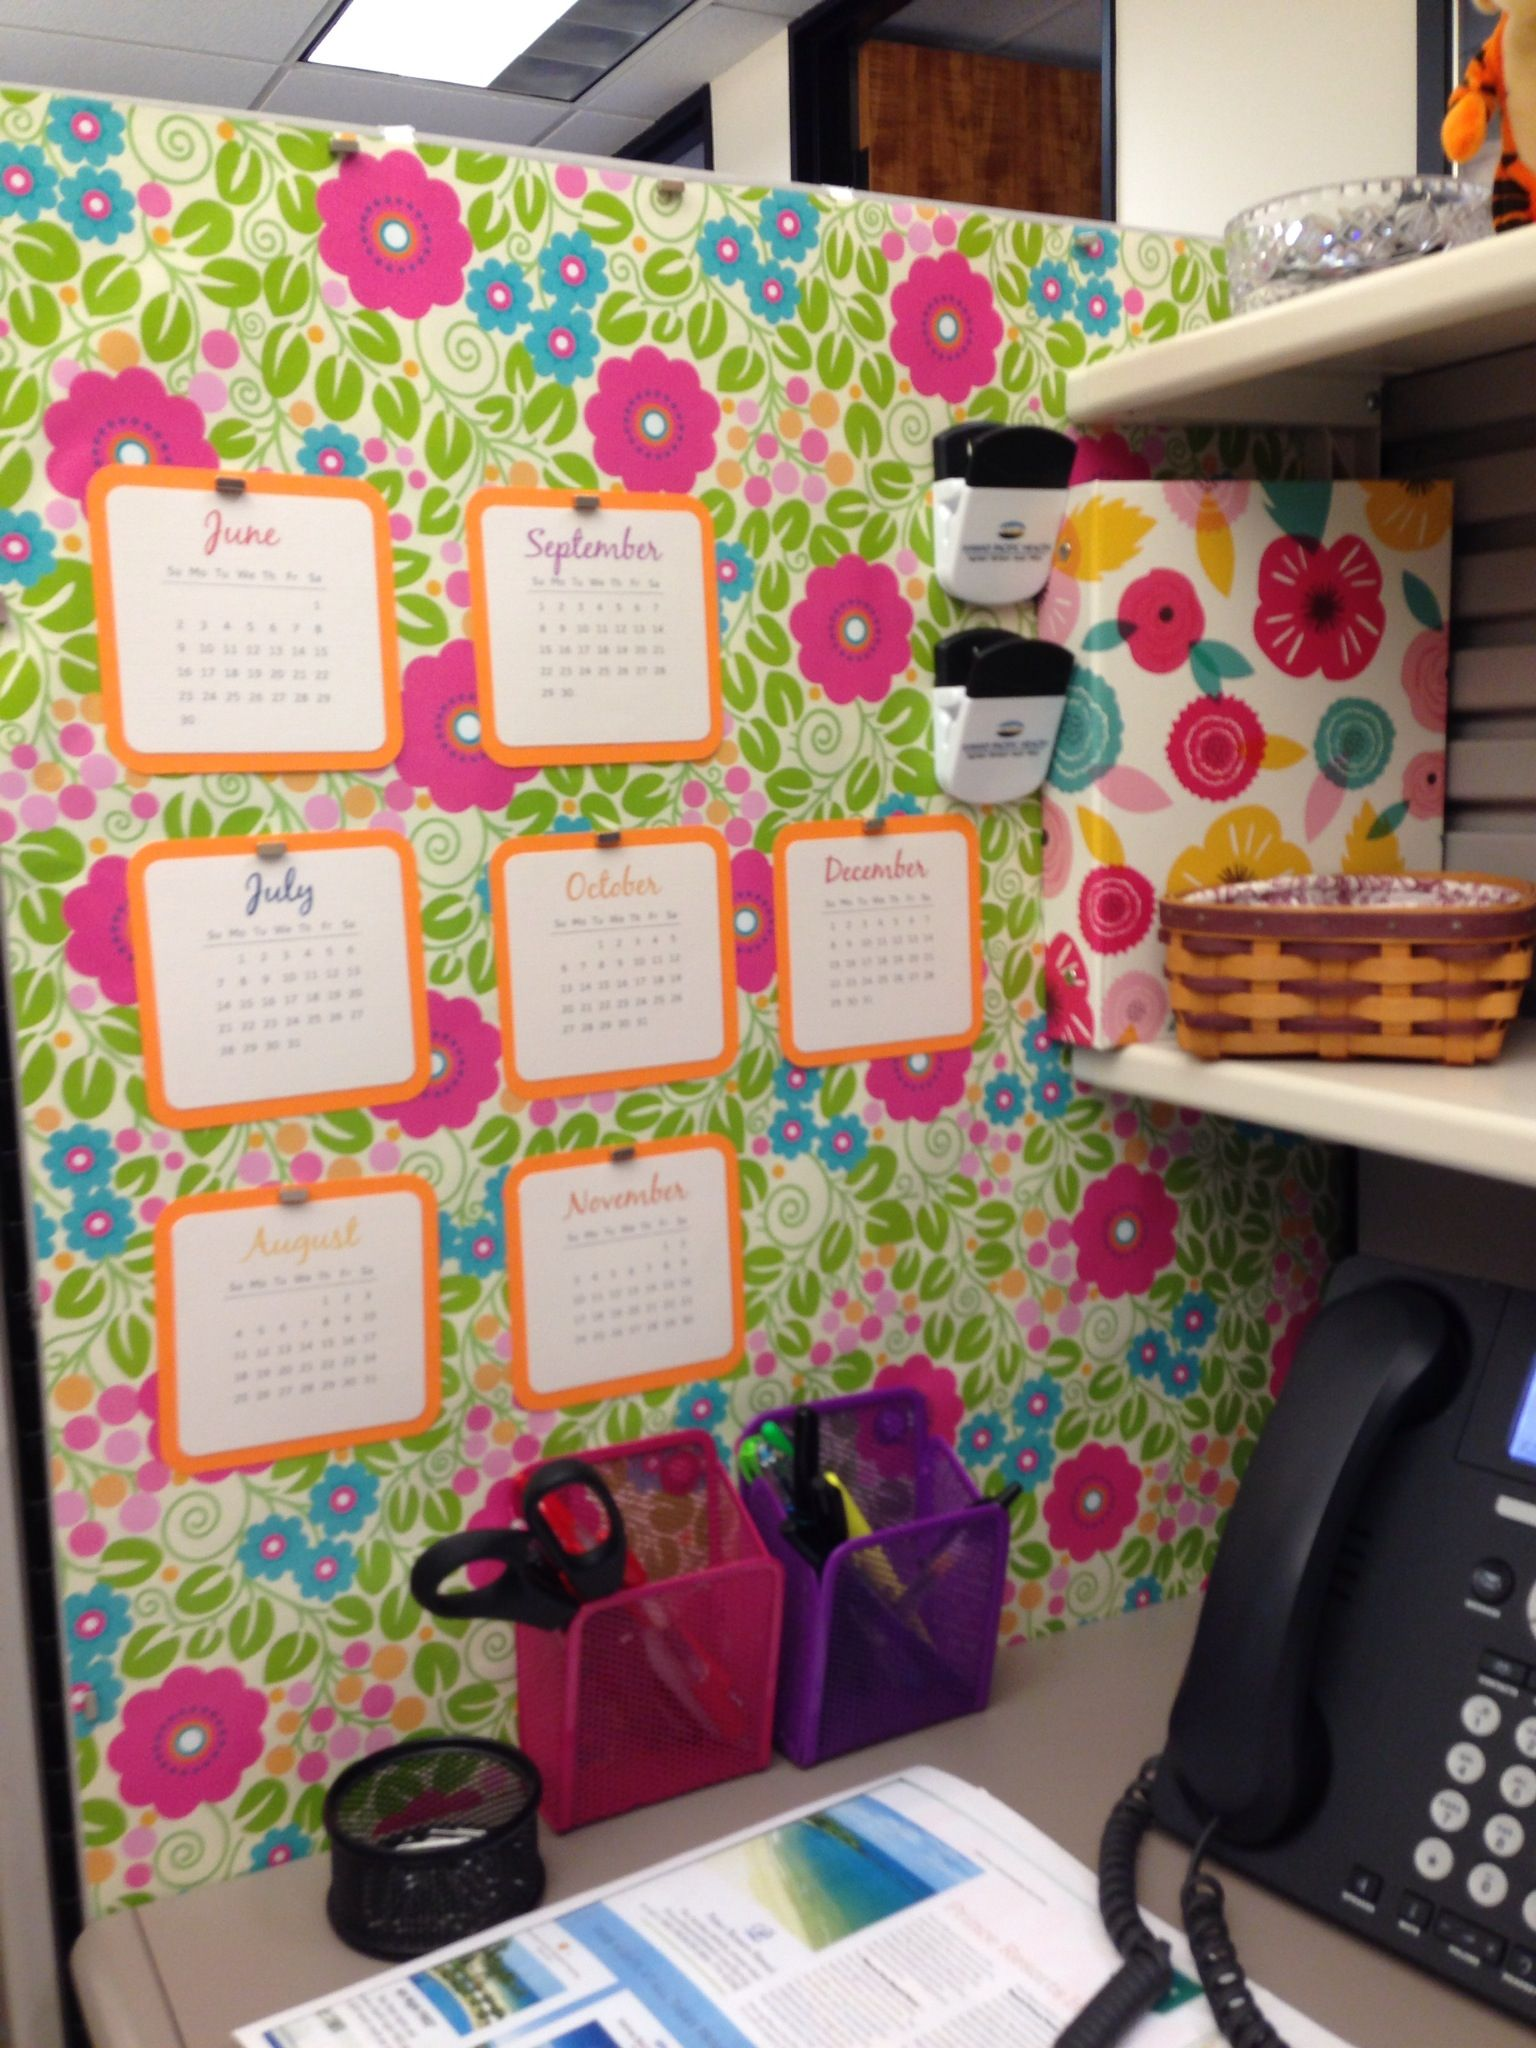 Decorating Cubicle Walls. Magnets hold calendar made with my Silhouette  I like cubicle much better now Cubicle Ideas Decorations For papers instead of Wrapping paper as wallpaper in a boring gray